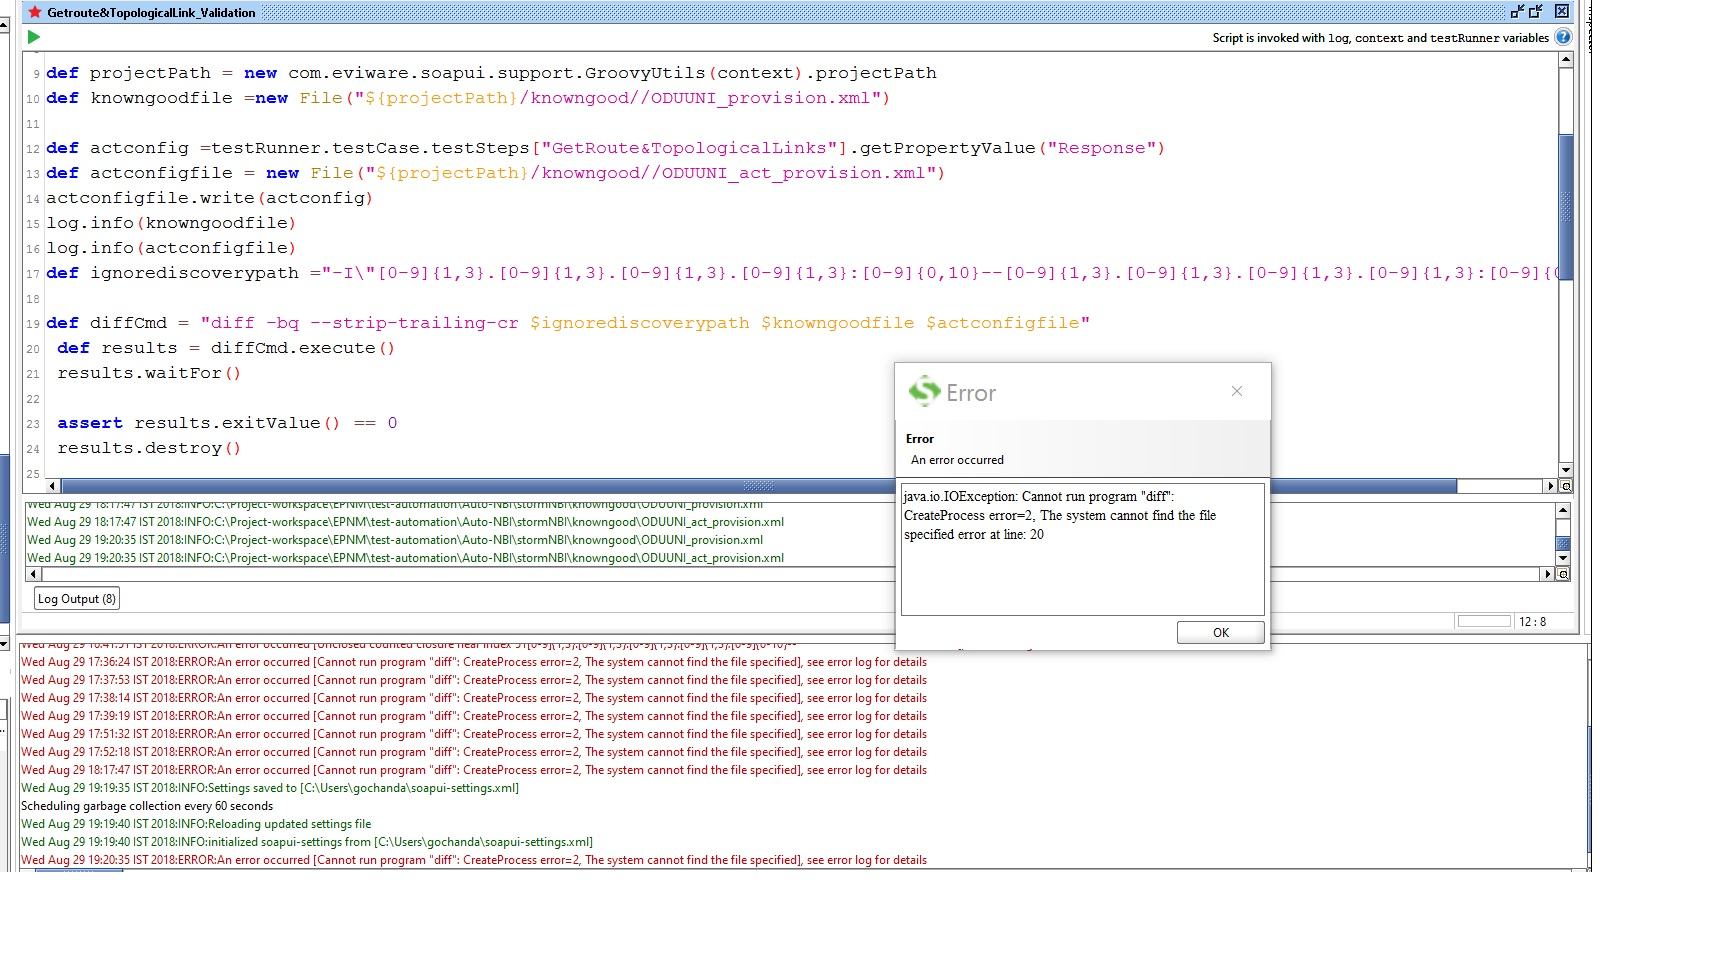 Diff XML files in SoapUI with Groovy, ignoring GUID and